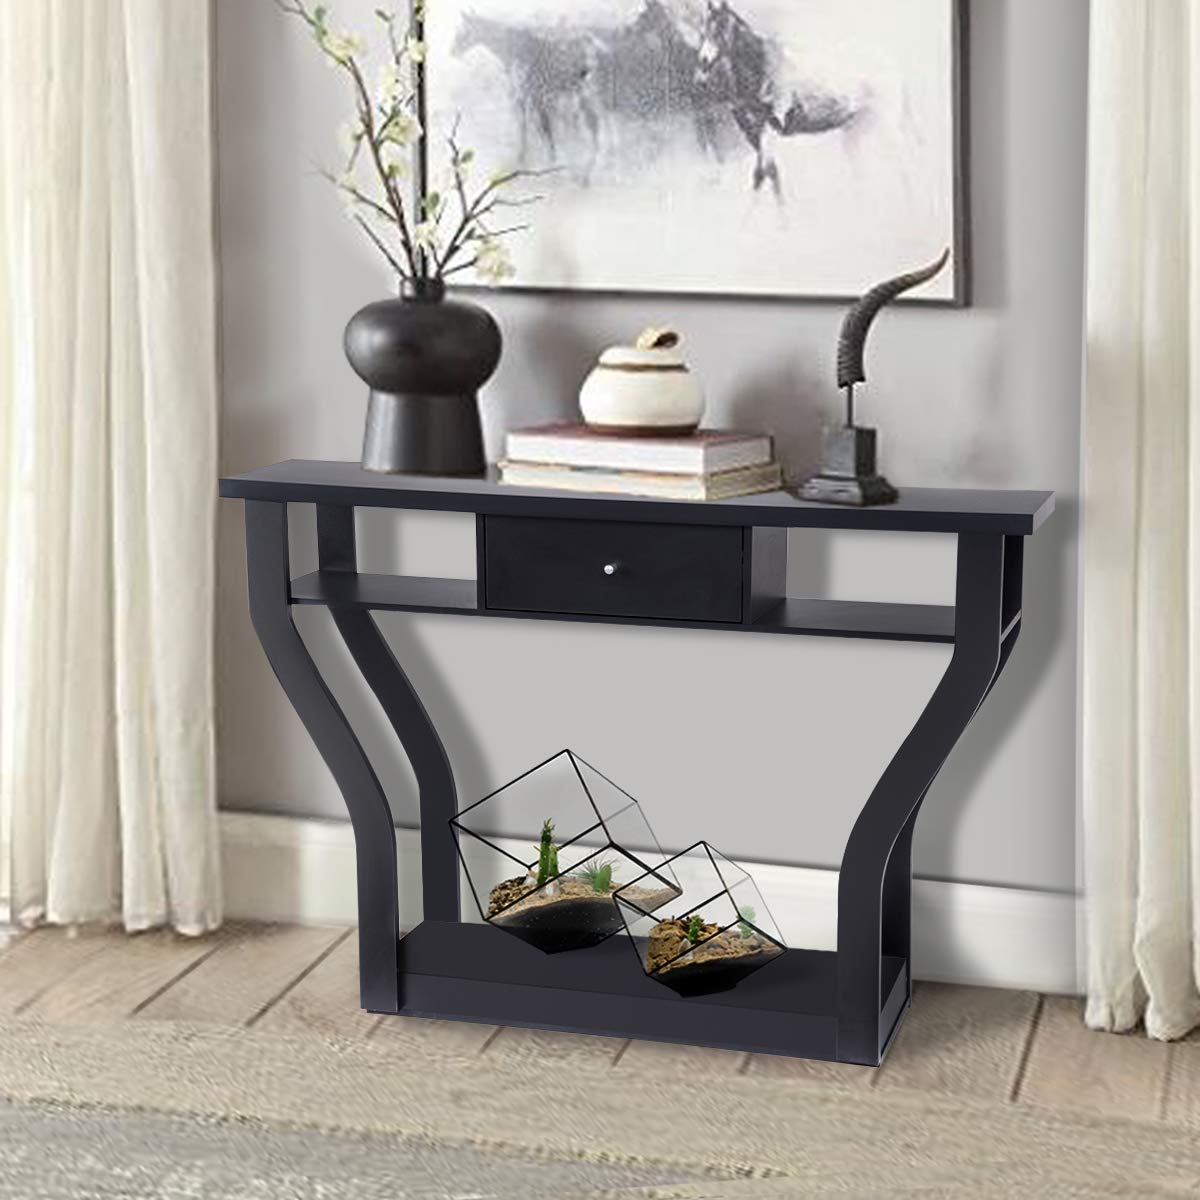 Giantex Console Hall Table For Entryway Small Space Sofa